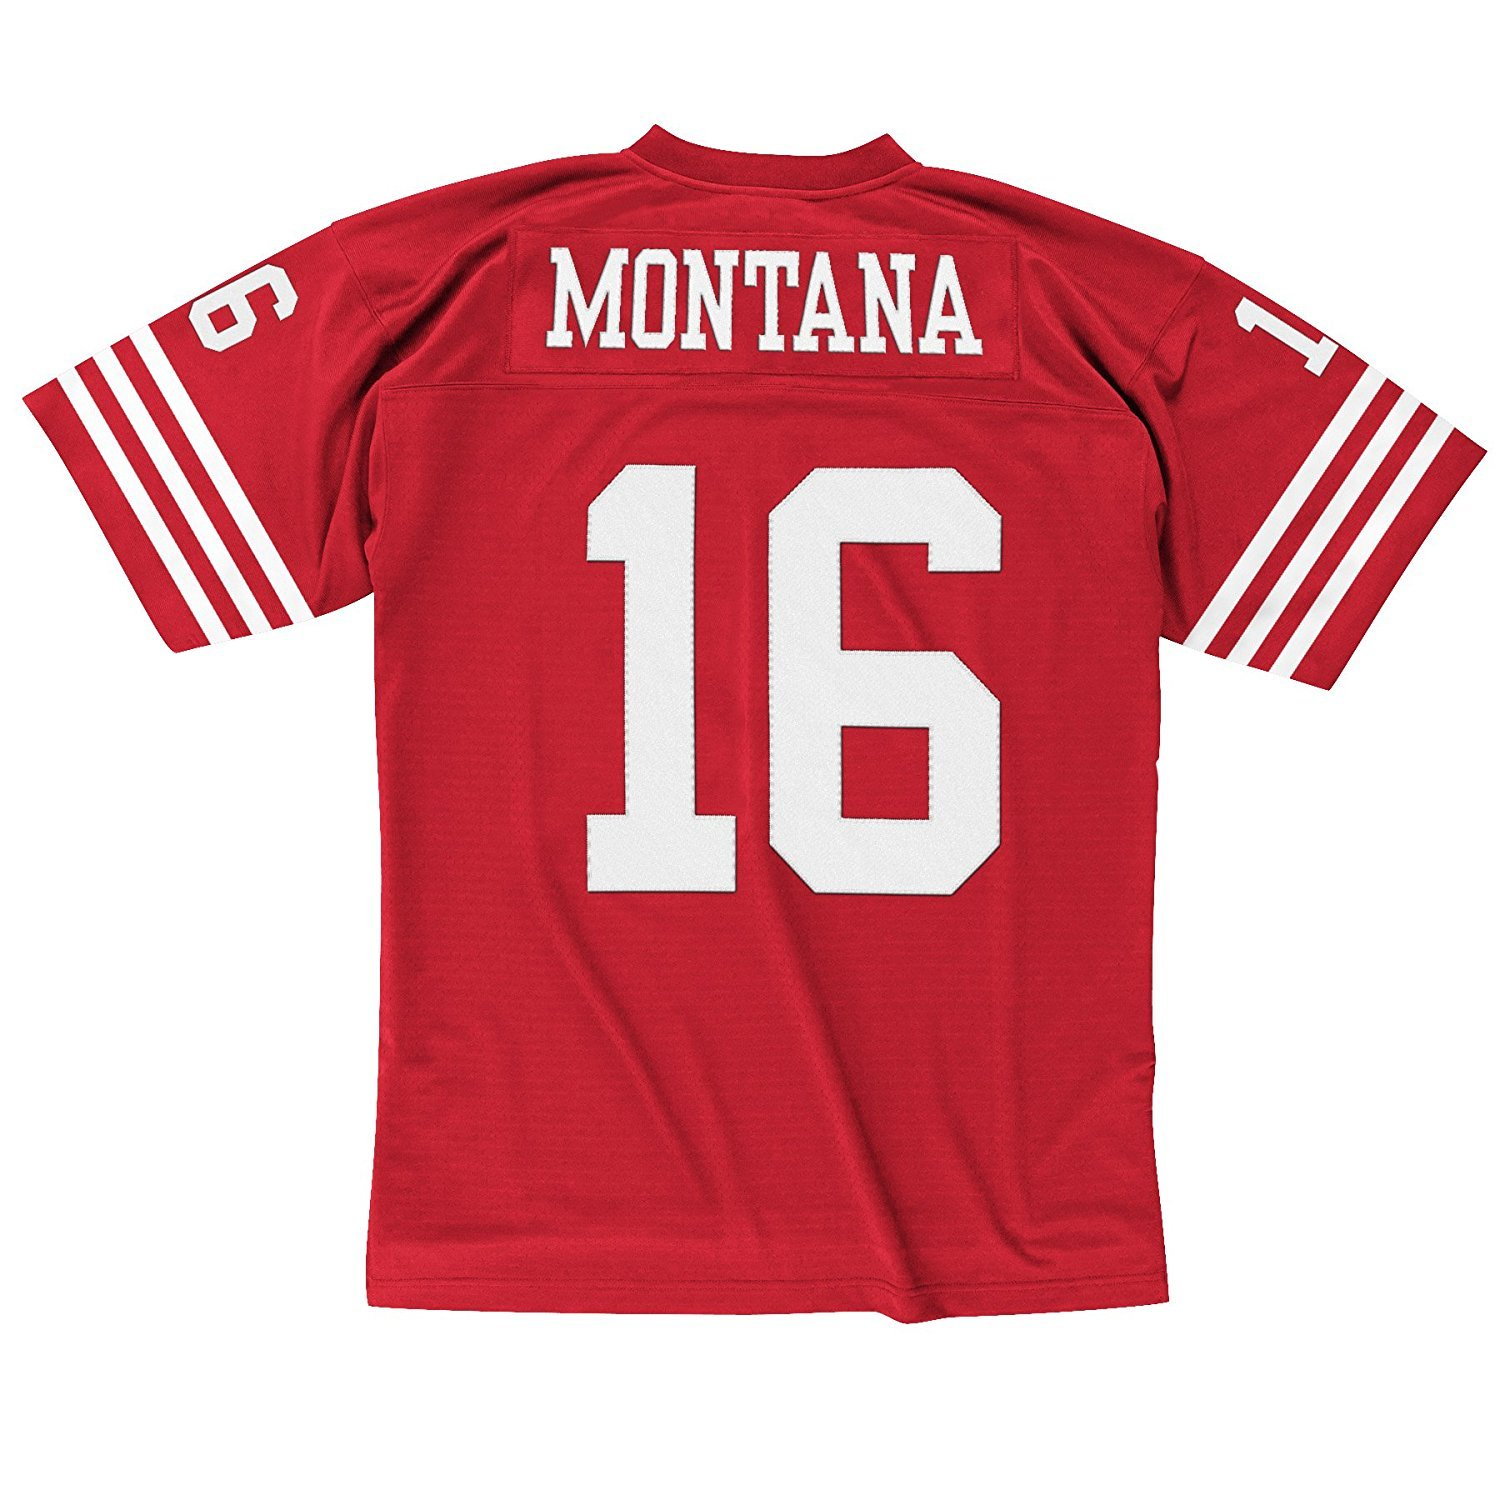 check out 48e53 33684 Mitchell & Ness Joe Montana San Francisco 49ers Scarlet Red Throwback Jersey